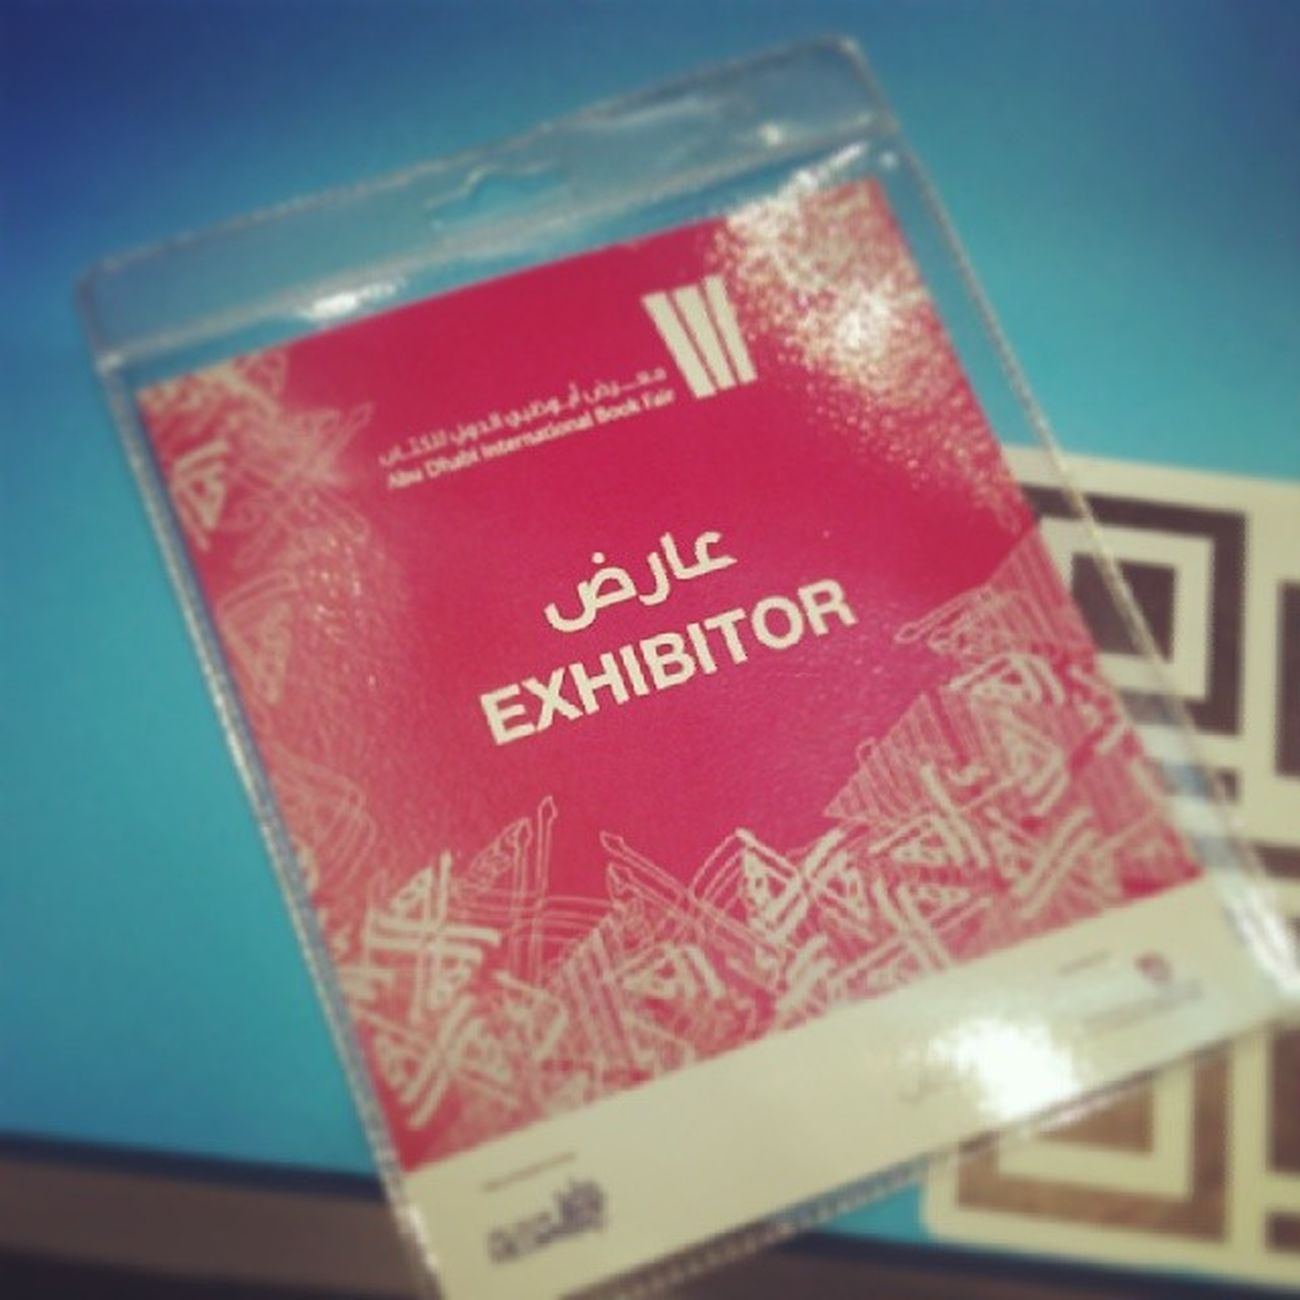 Getting ready for ADIBF2014